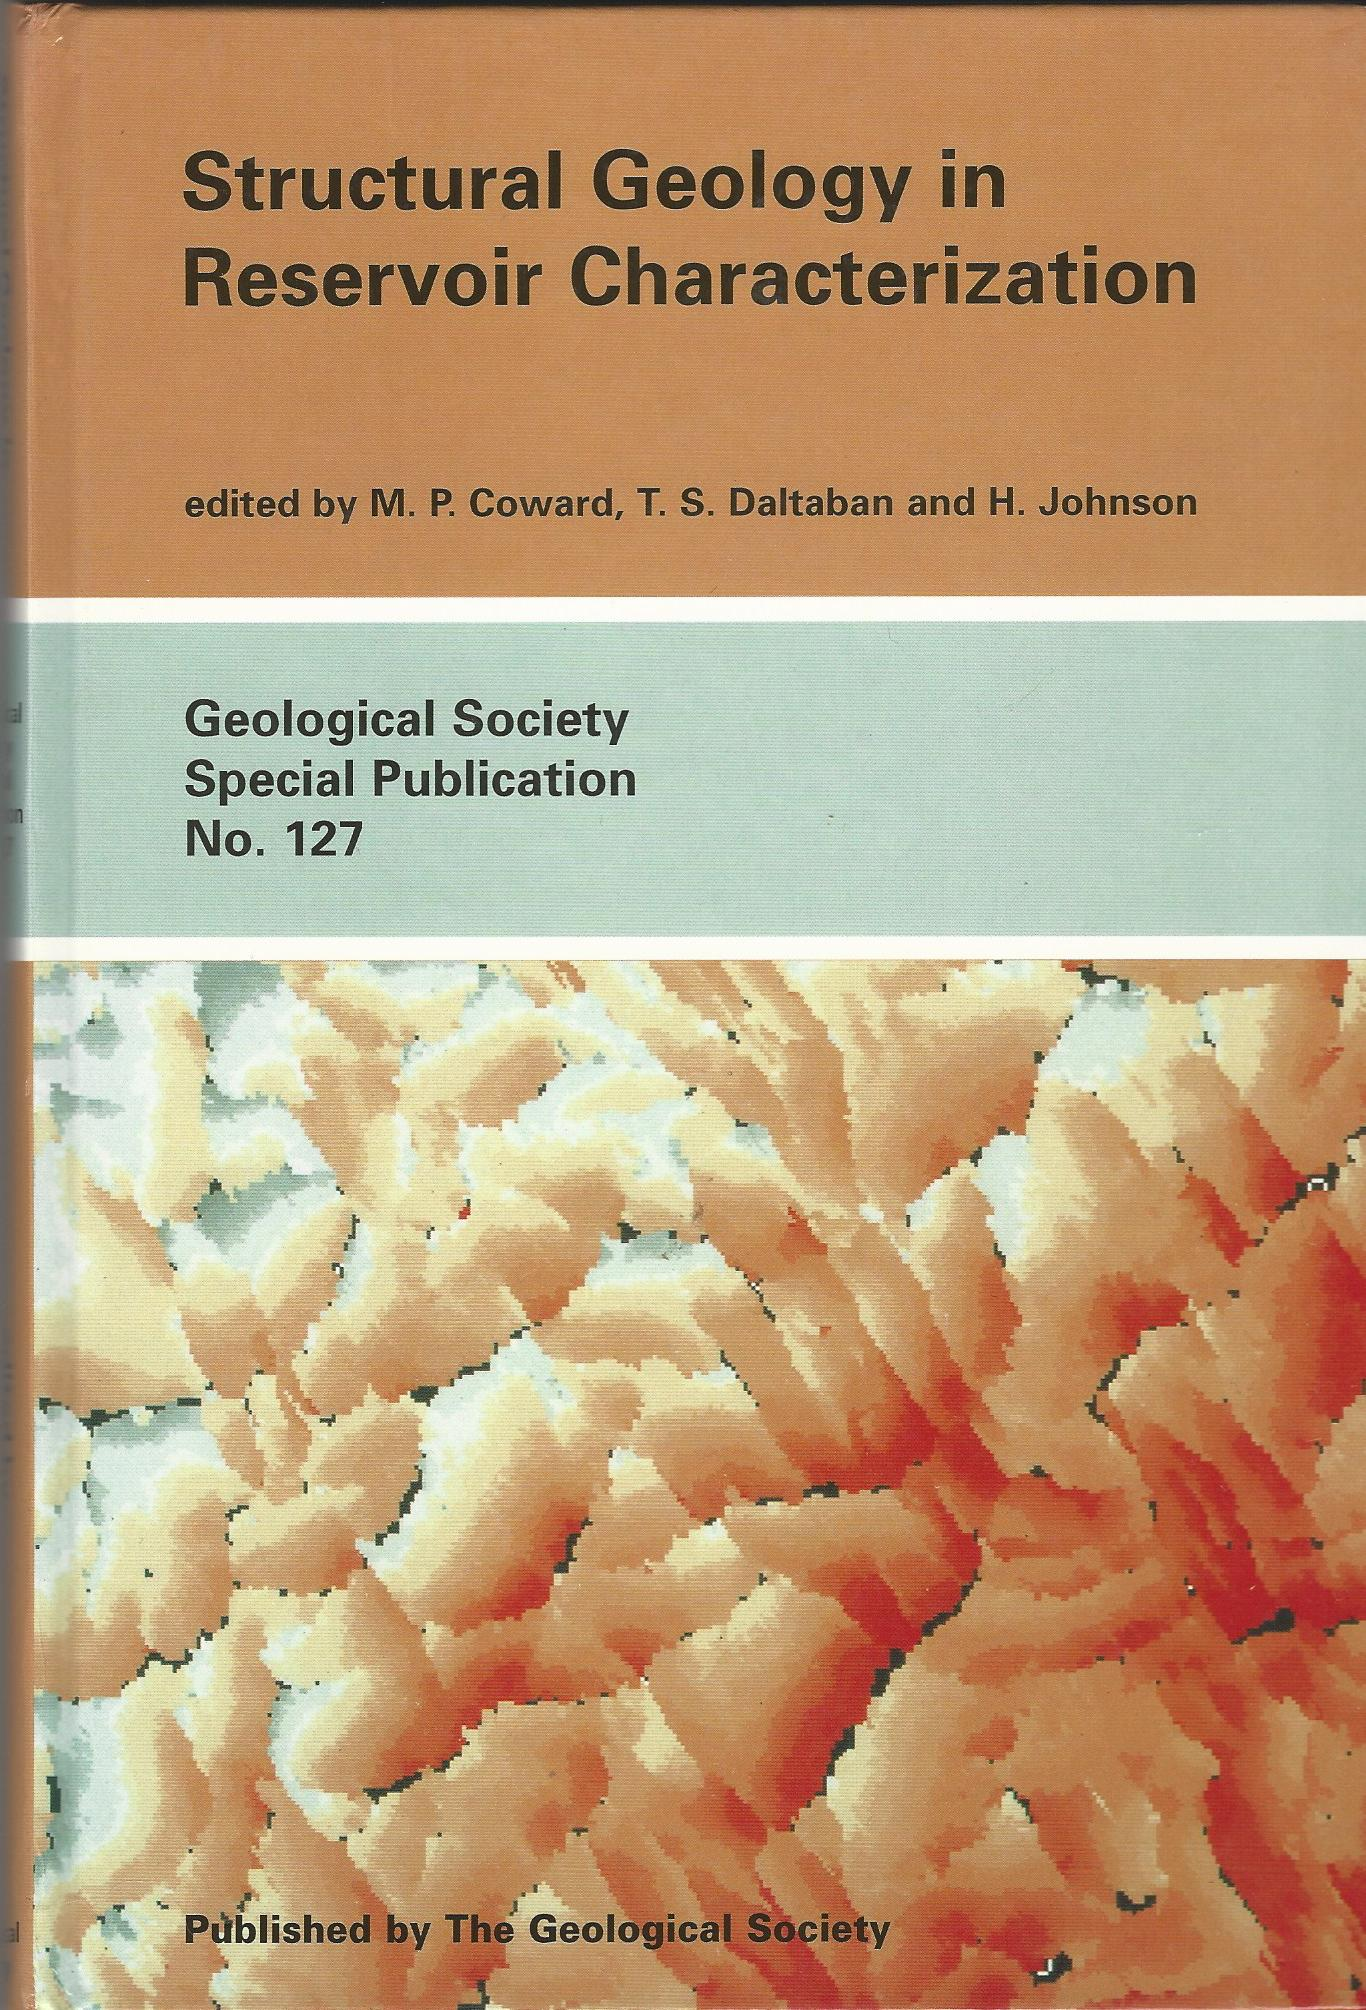 Image for Structural Geology in Reservoir Characterization (Special Publication No. 127)